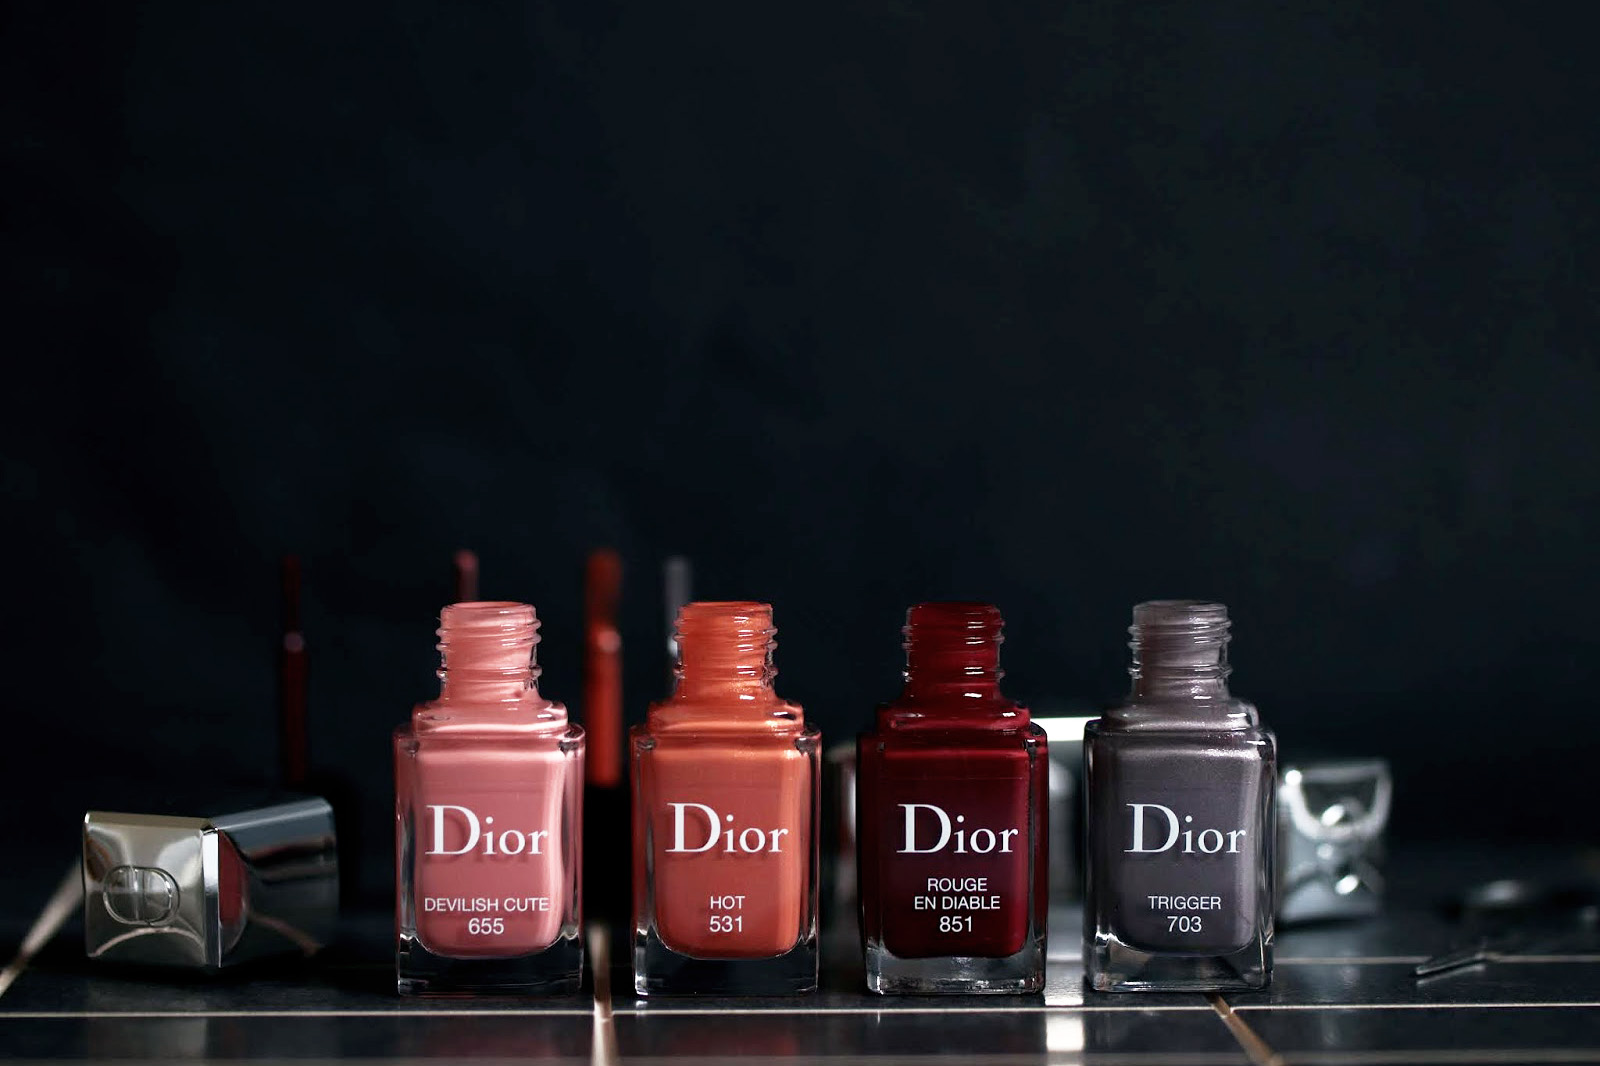 dior vernis 655 devilish cute 531 hot 703 trigger 851 rouge en diable avis test swatch